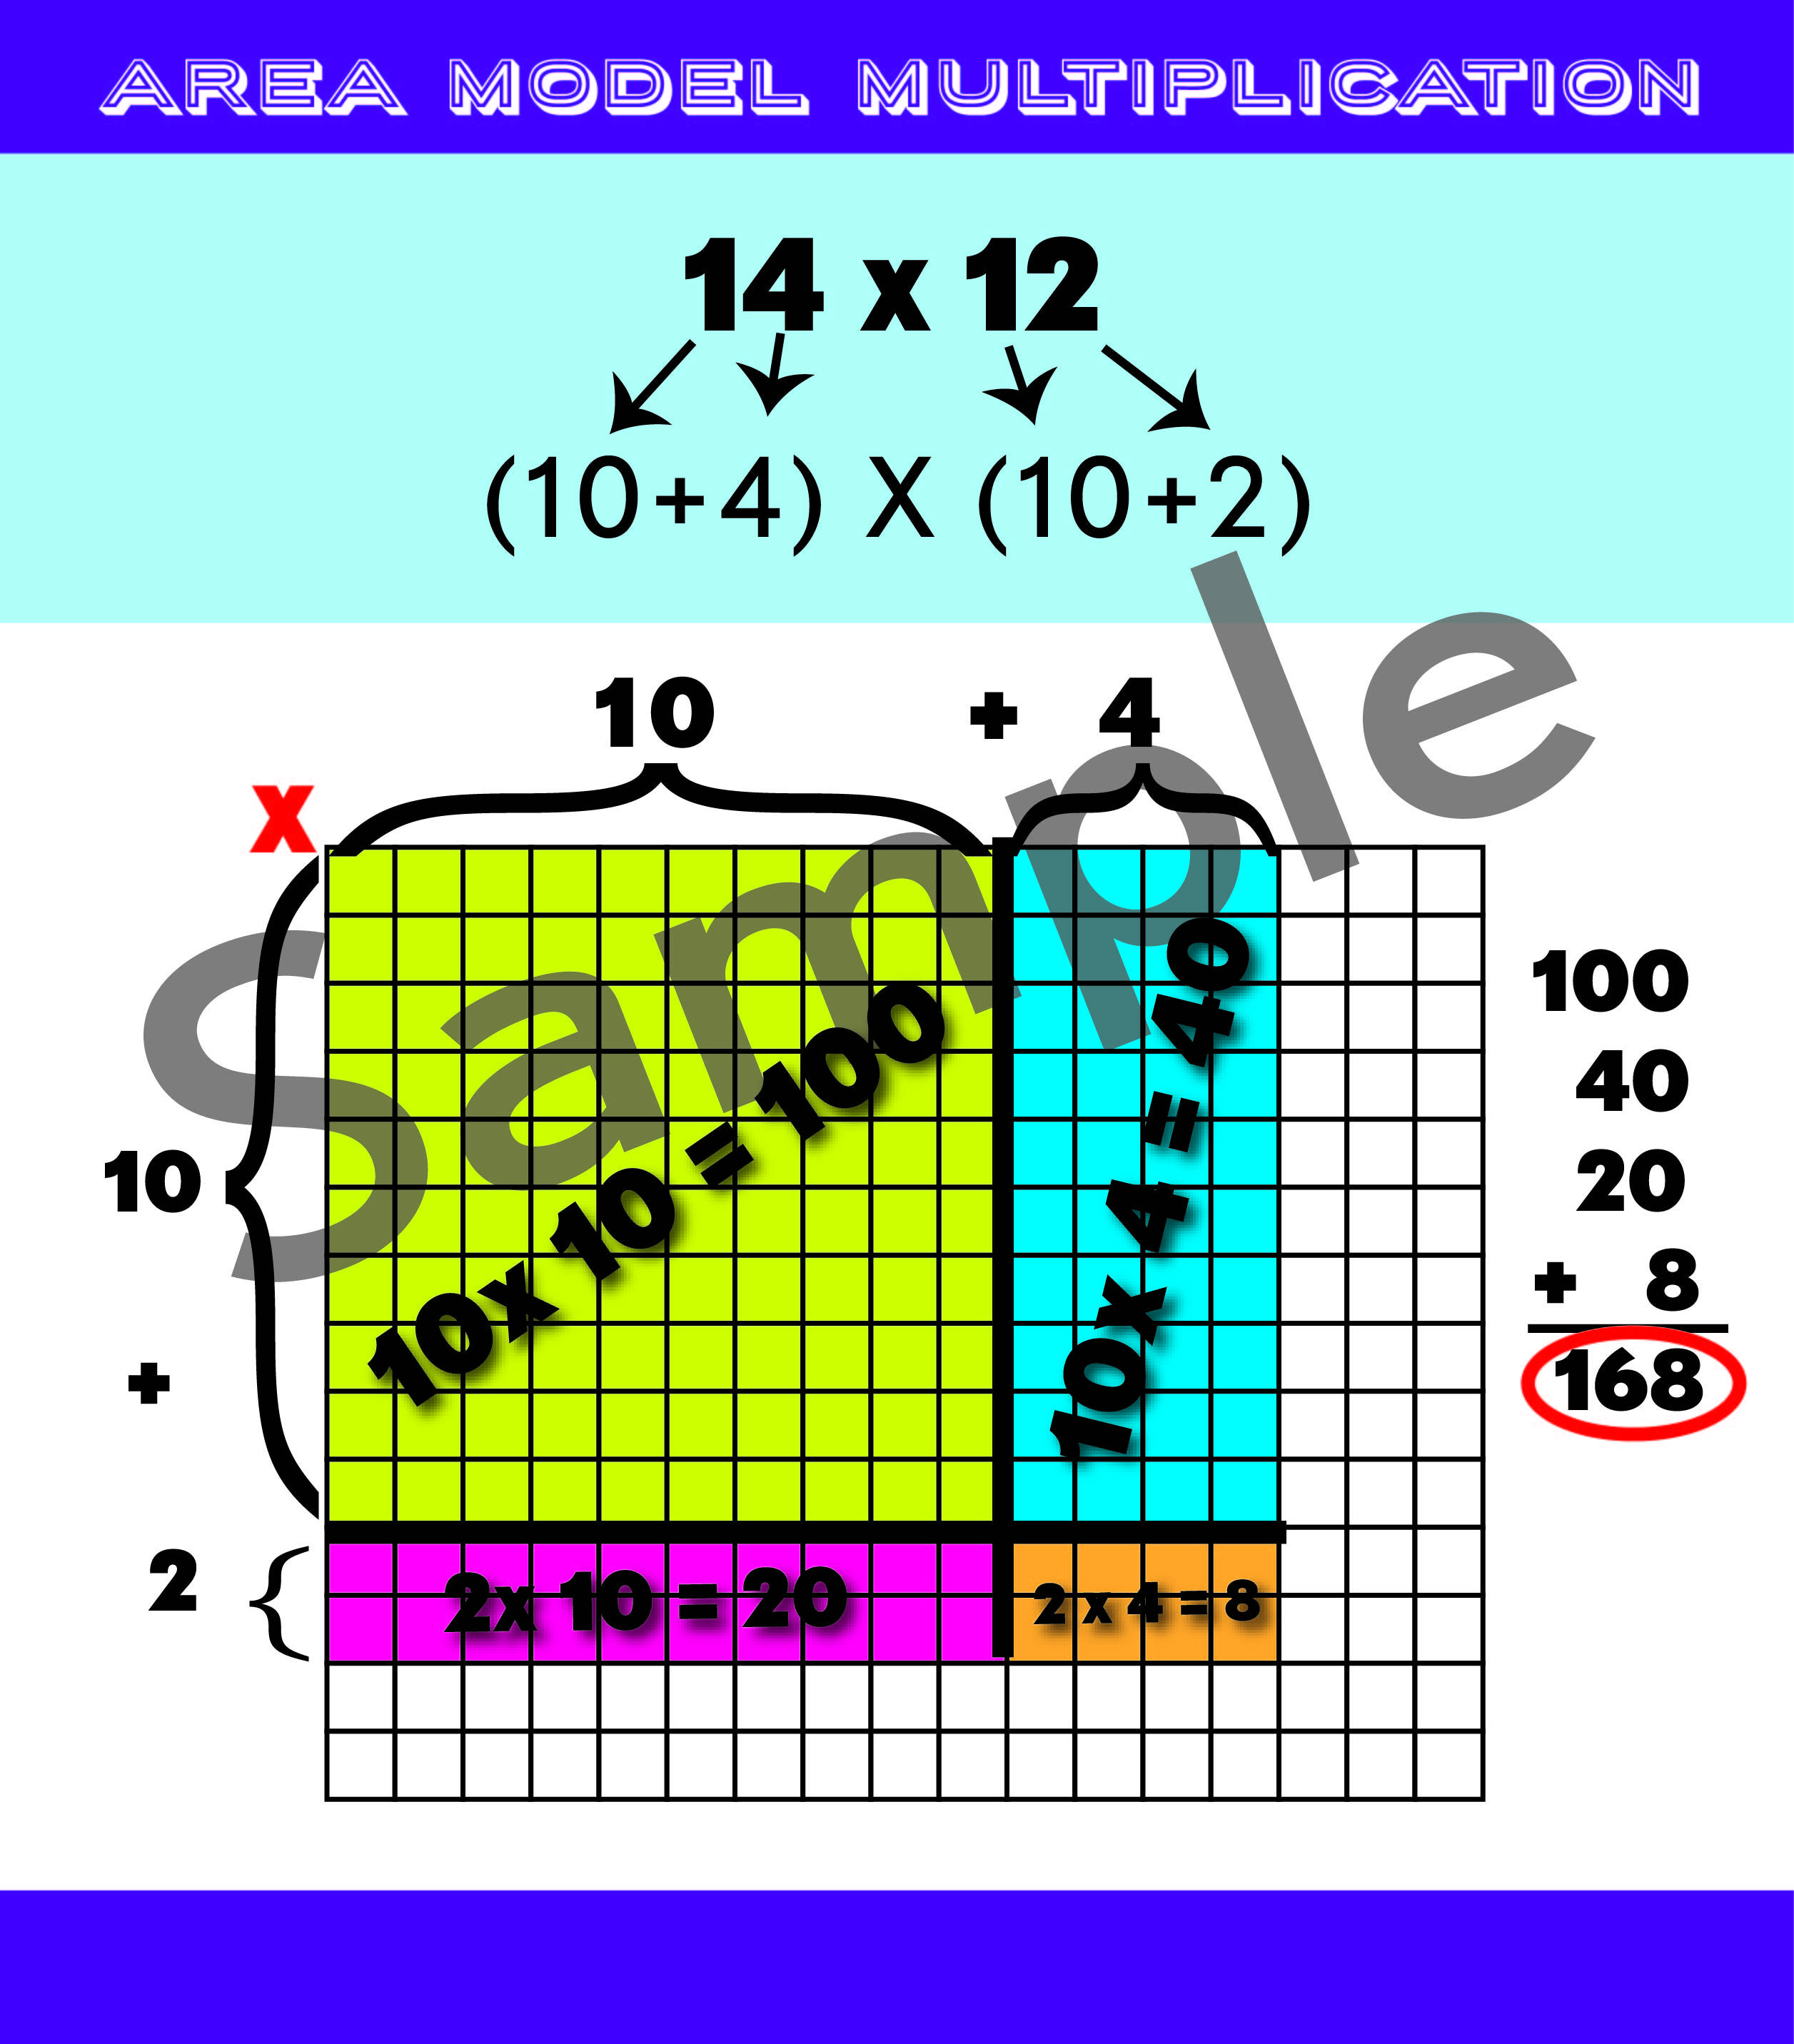 Area Model Multiplication Poster